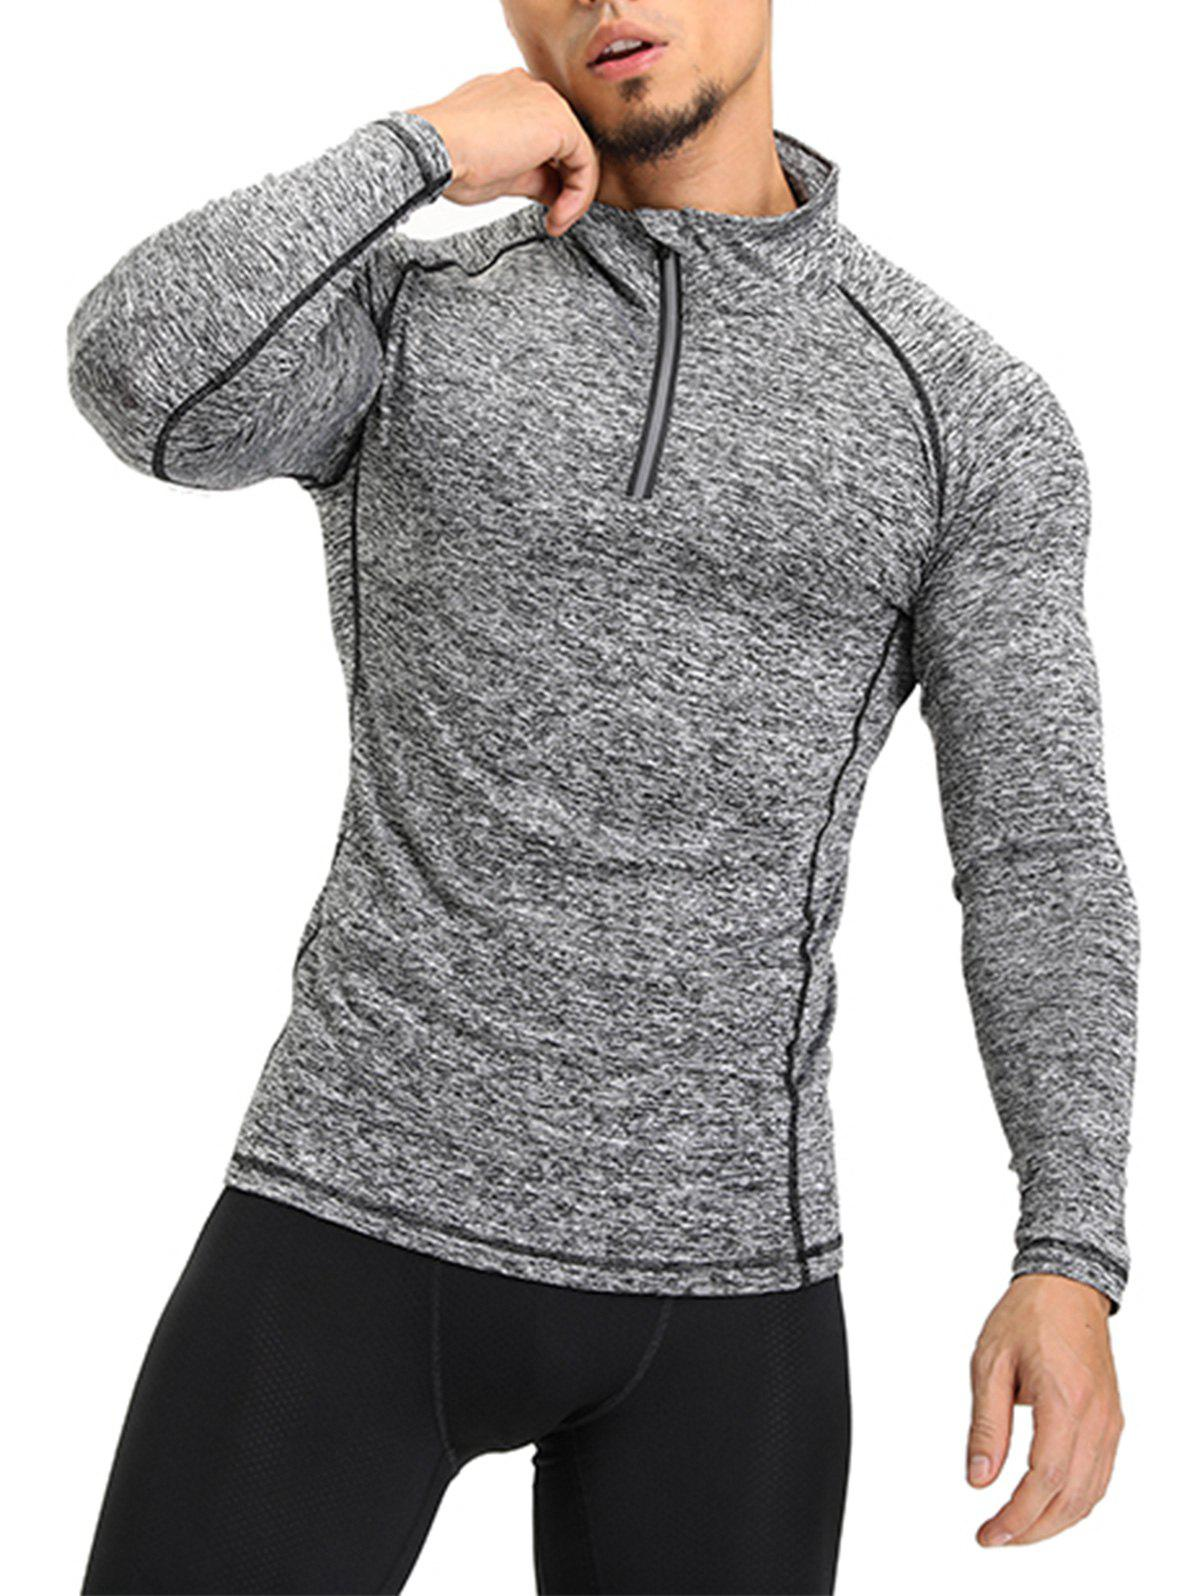 Raglan Sleeve Half Zip T-shirt - GRAY XL